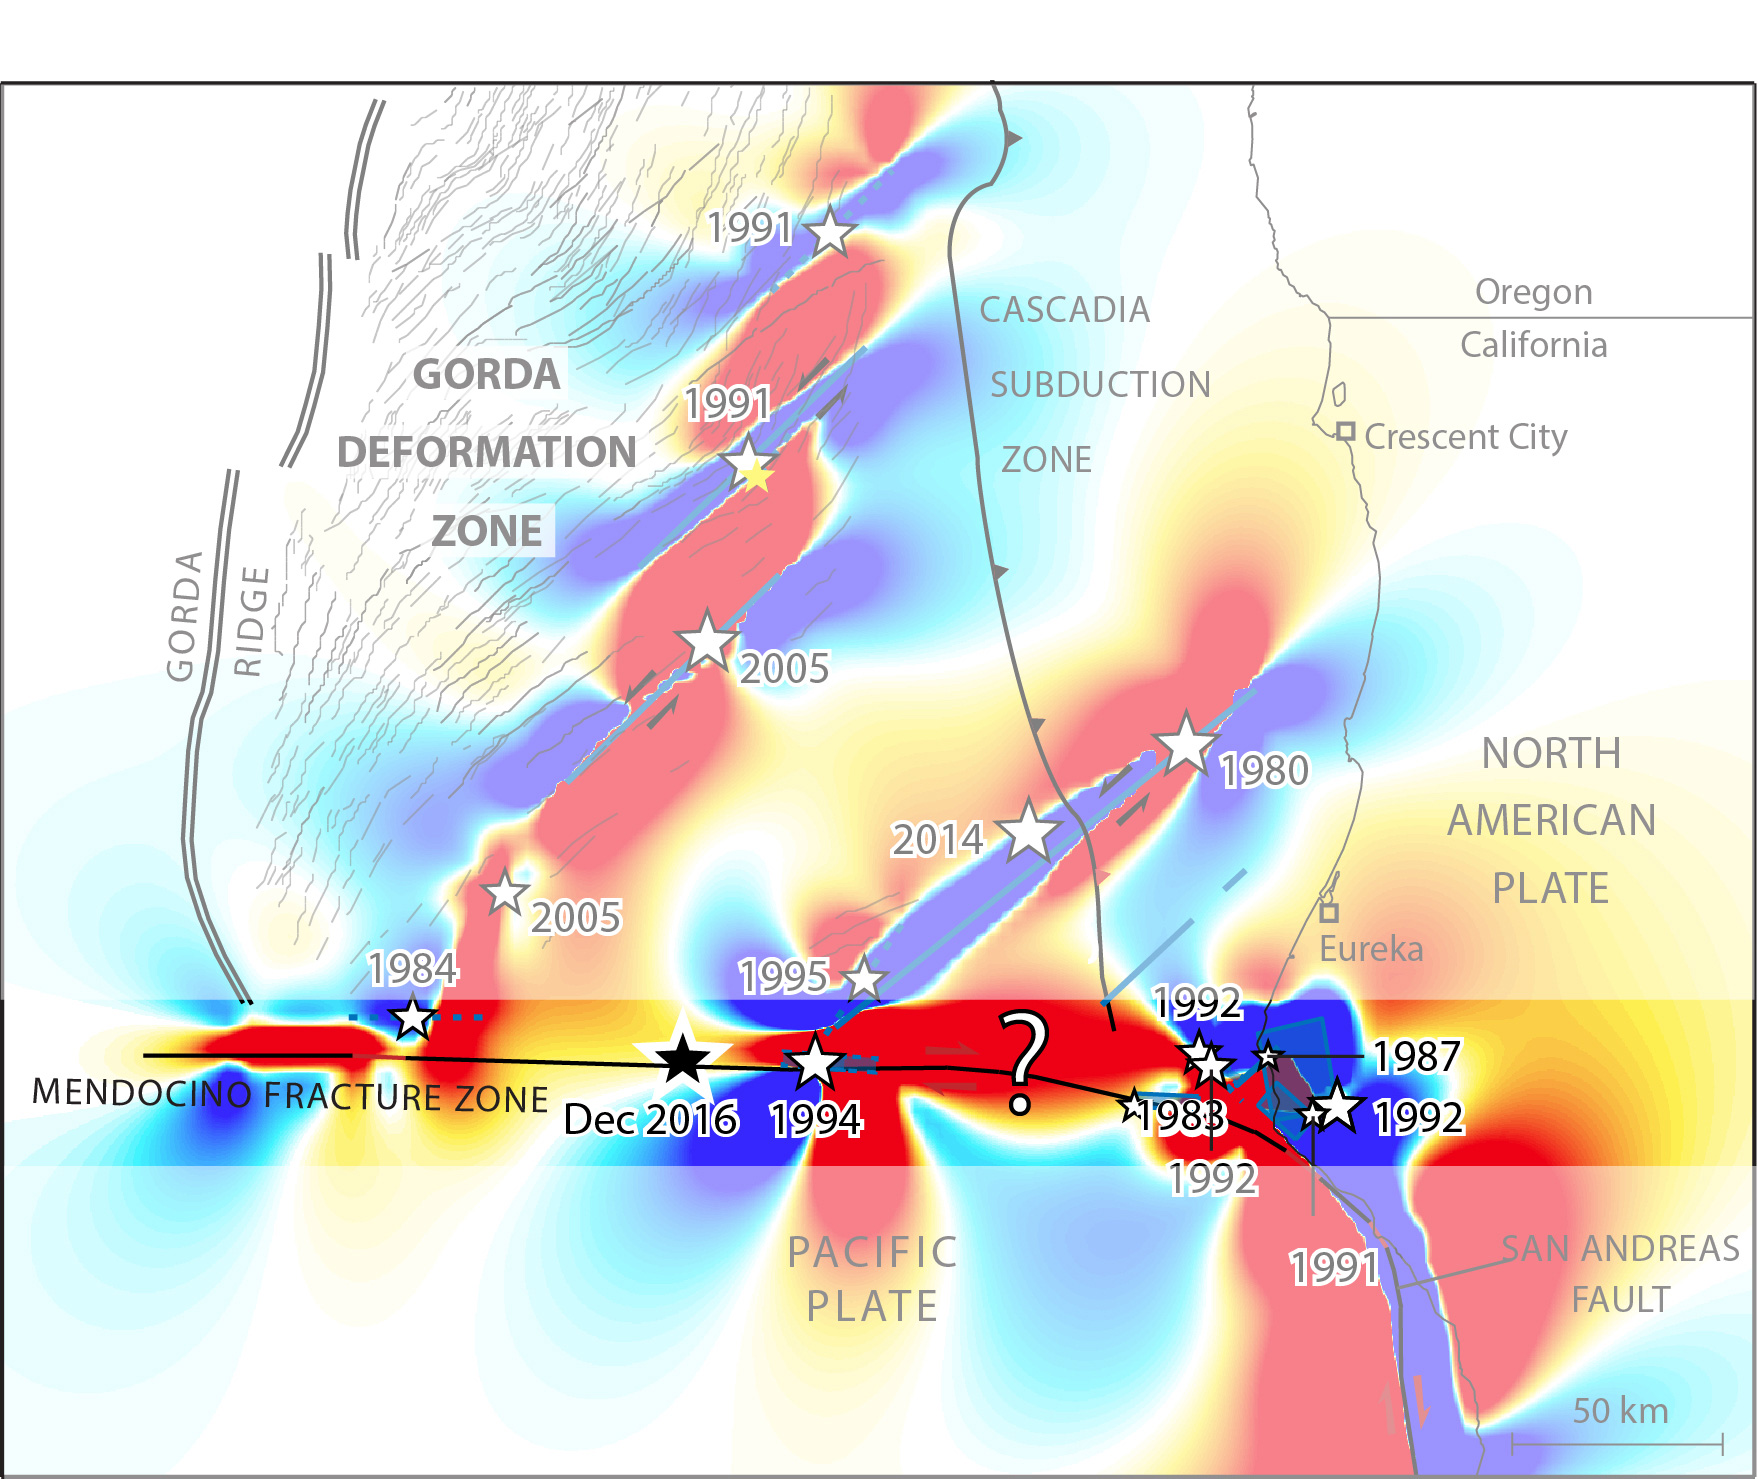 Possible promotion of Thursday's earthquake by past earthquakes in and around the Gorda deformation zone by the transfer of stress. Red indicates stress increase on a fault; blue indicates stress decrease.